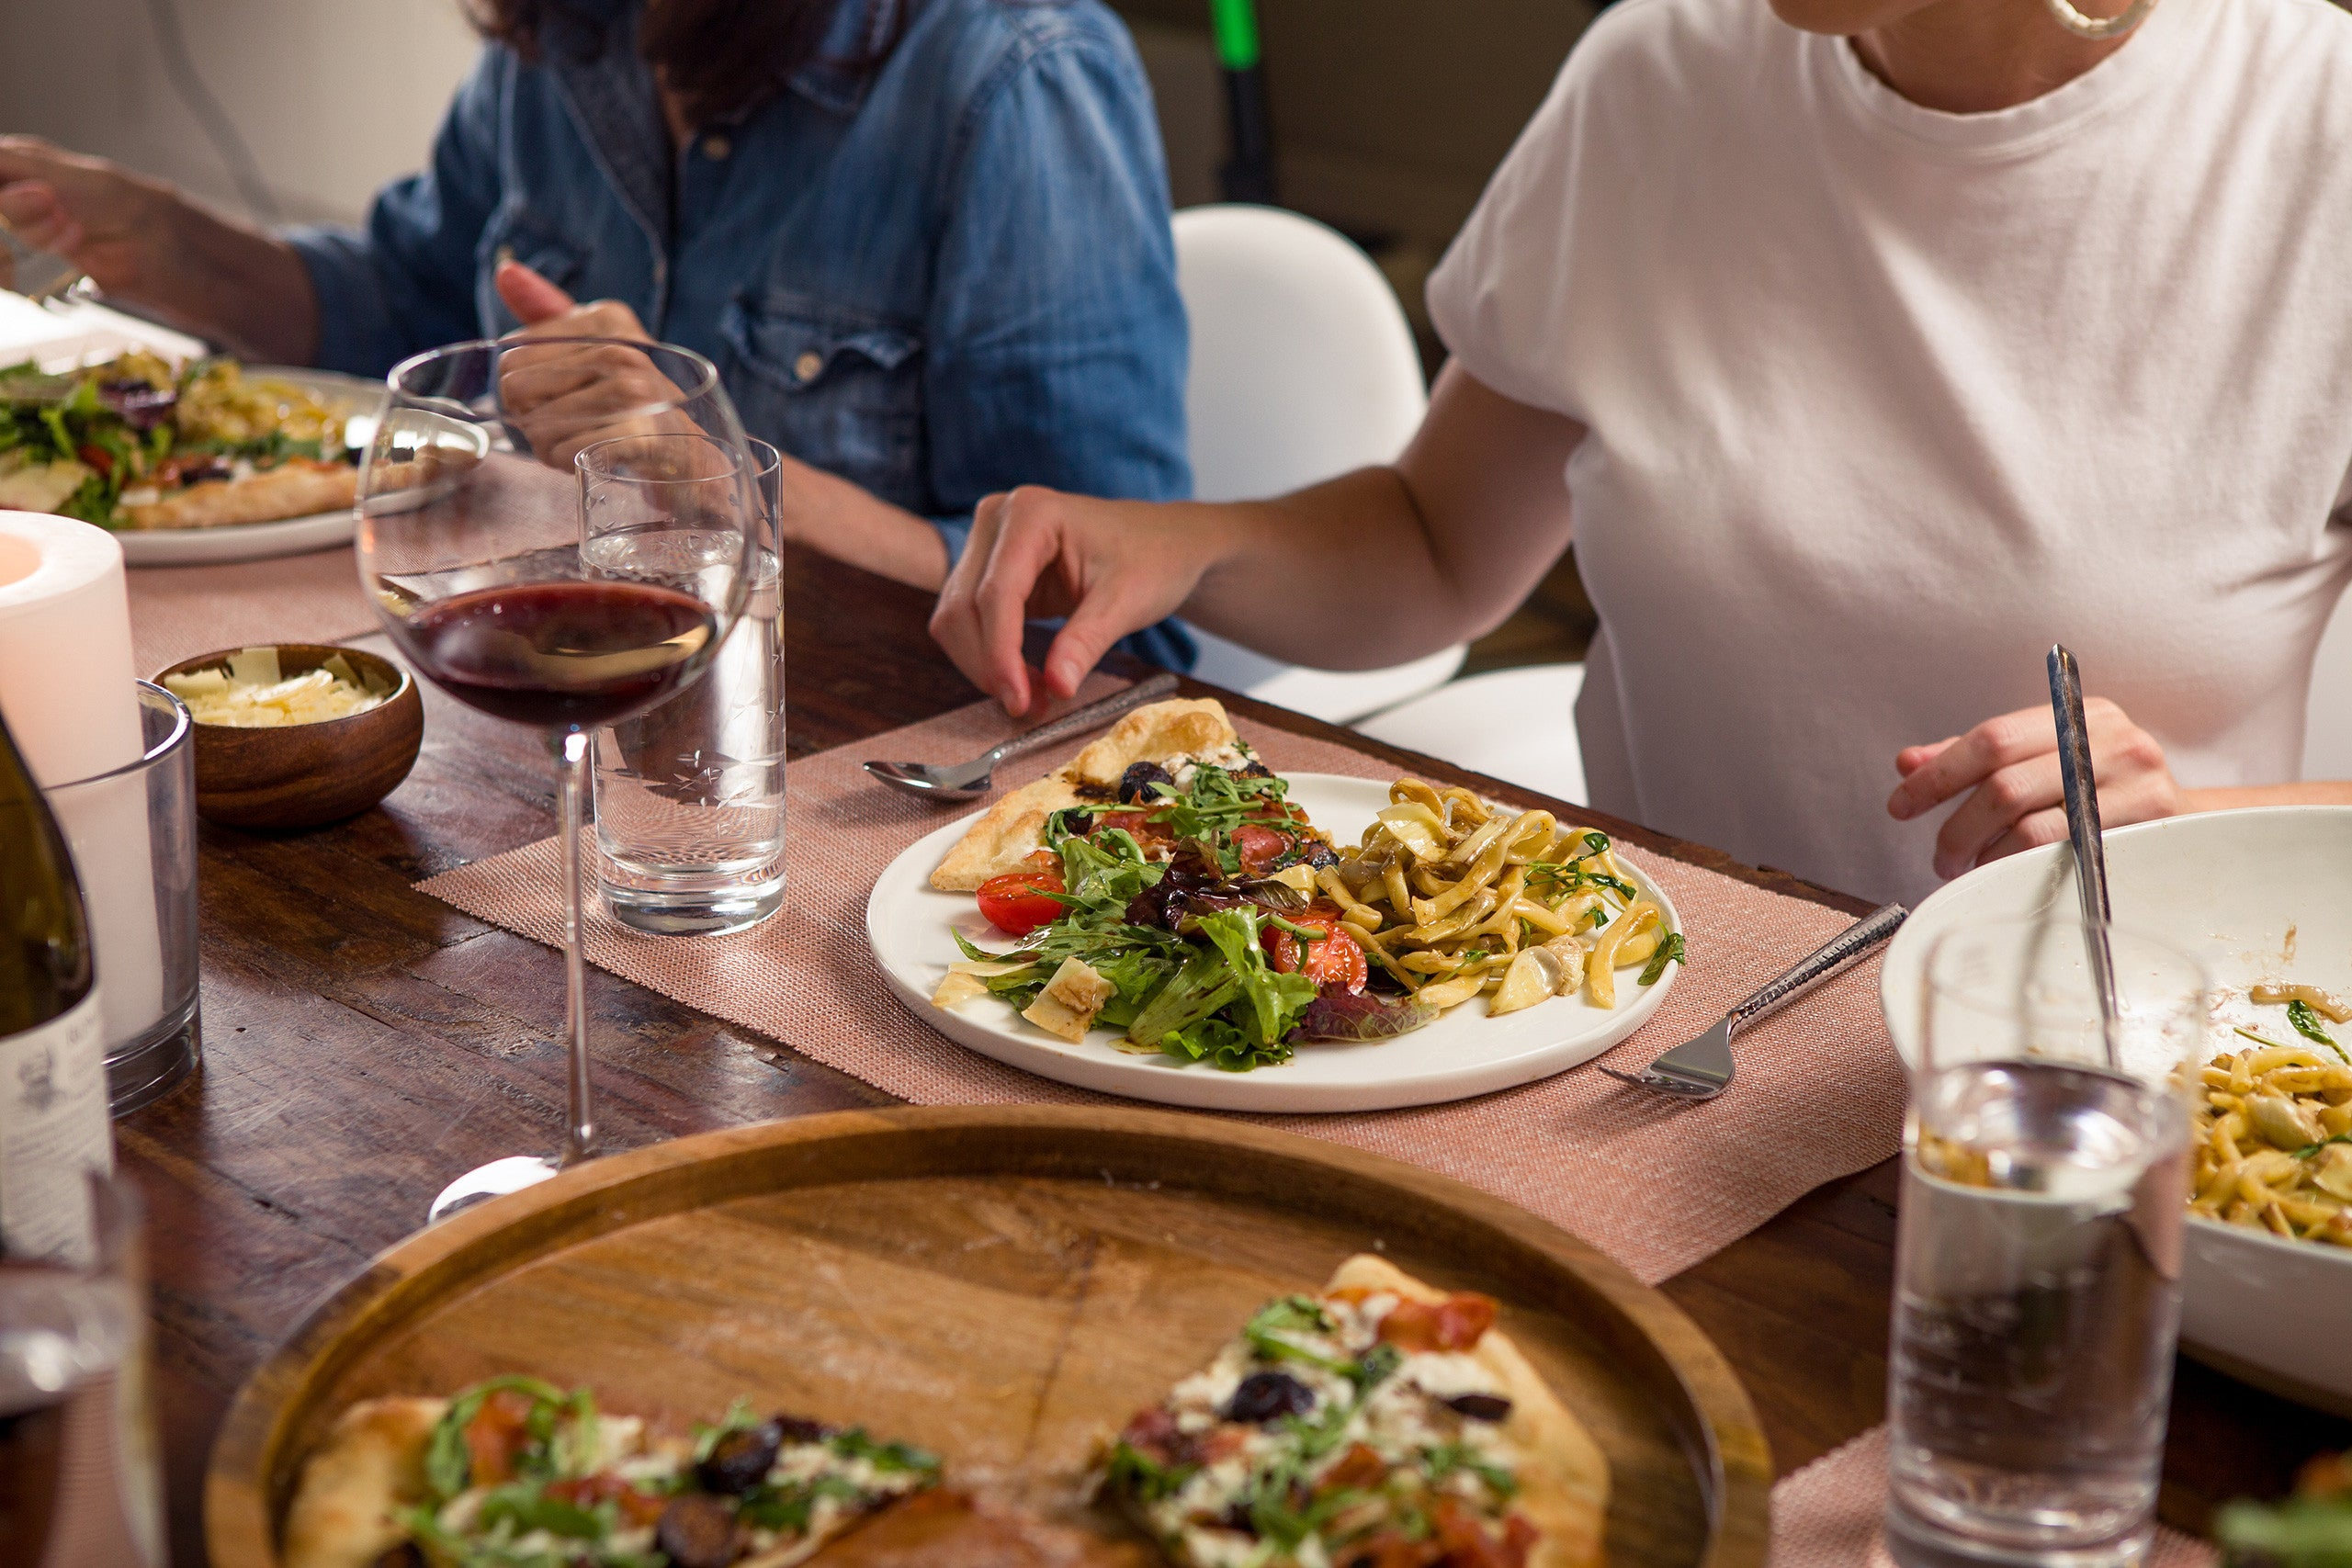 A family seated around a table, enjoying a dinner from a Vero Pizza and Pasta meal kit